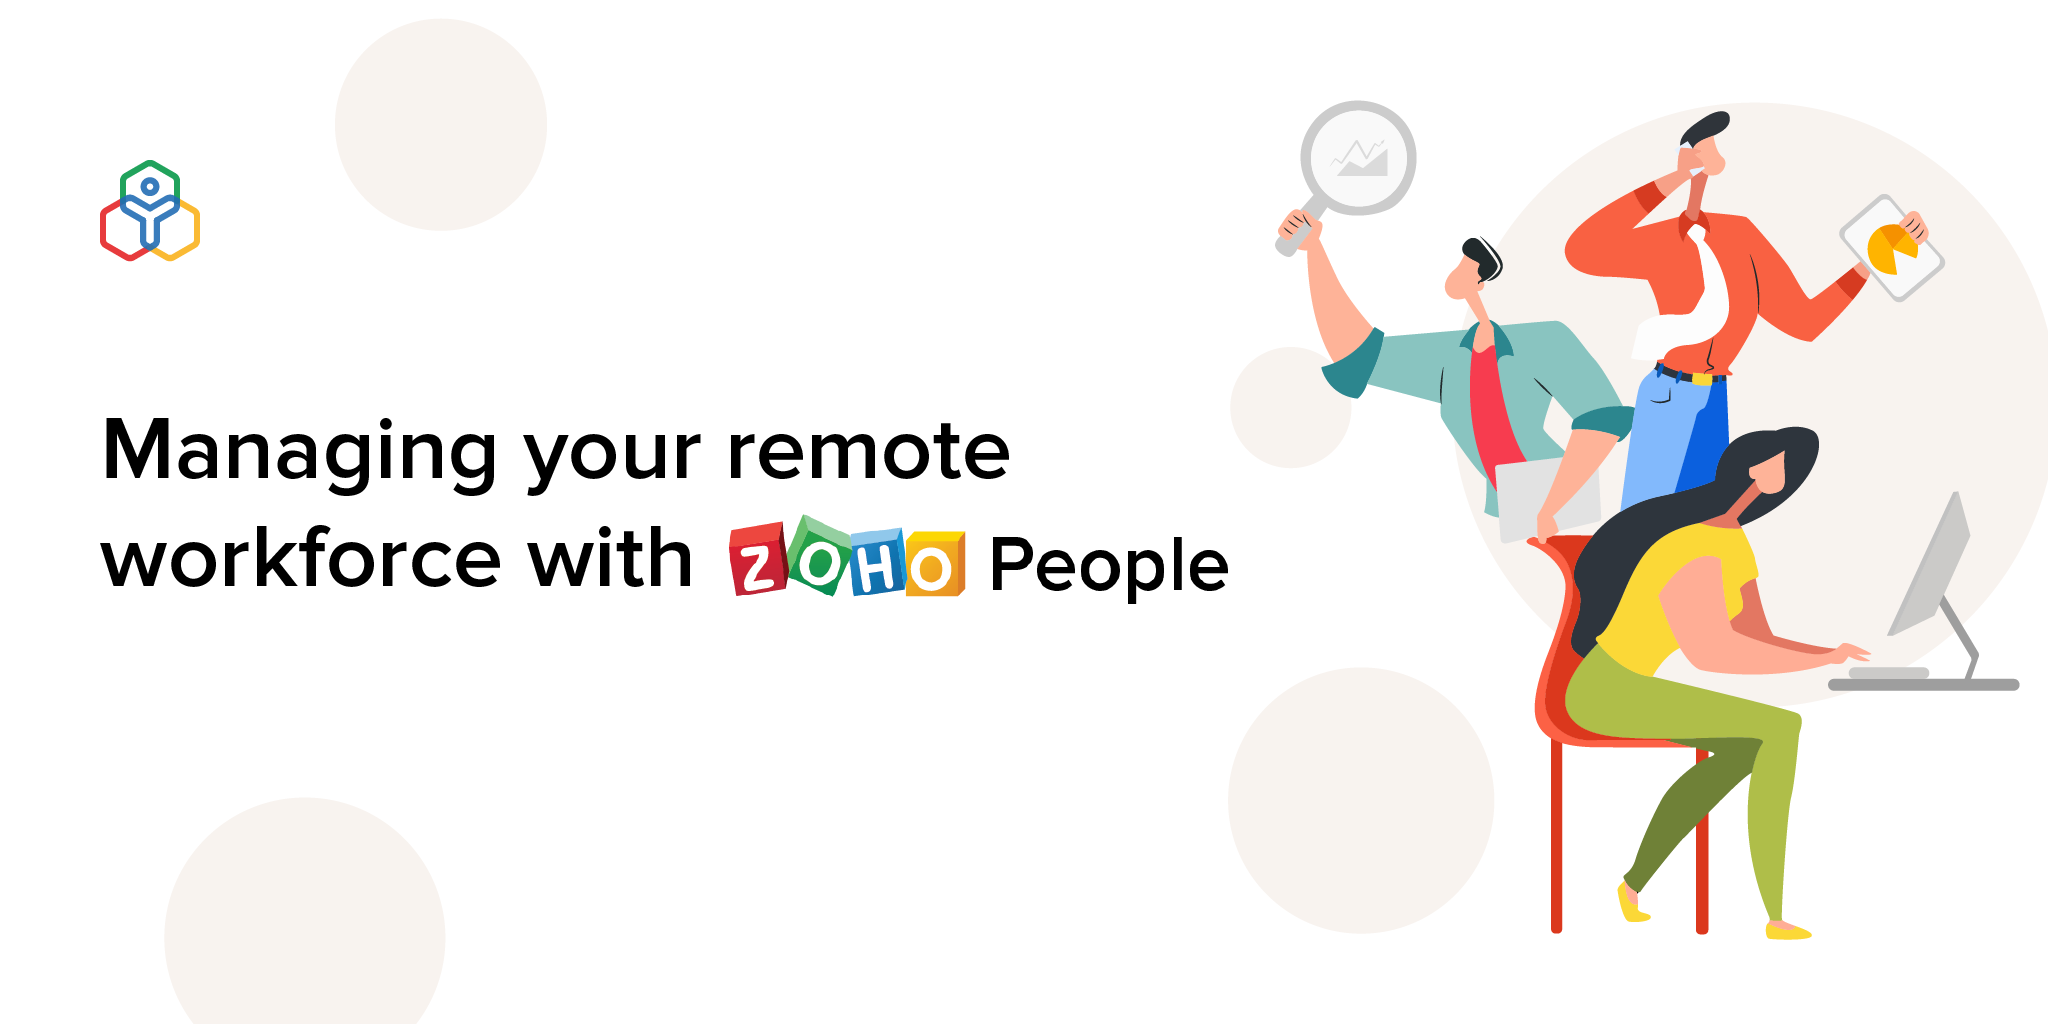 Here's how Zoho People eases remote workforce management